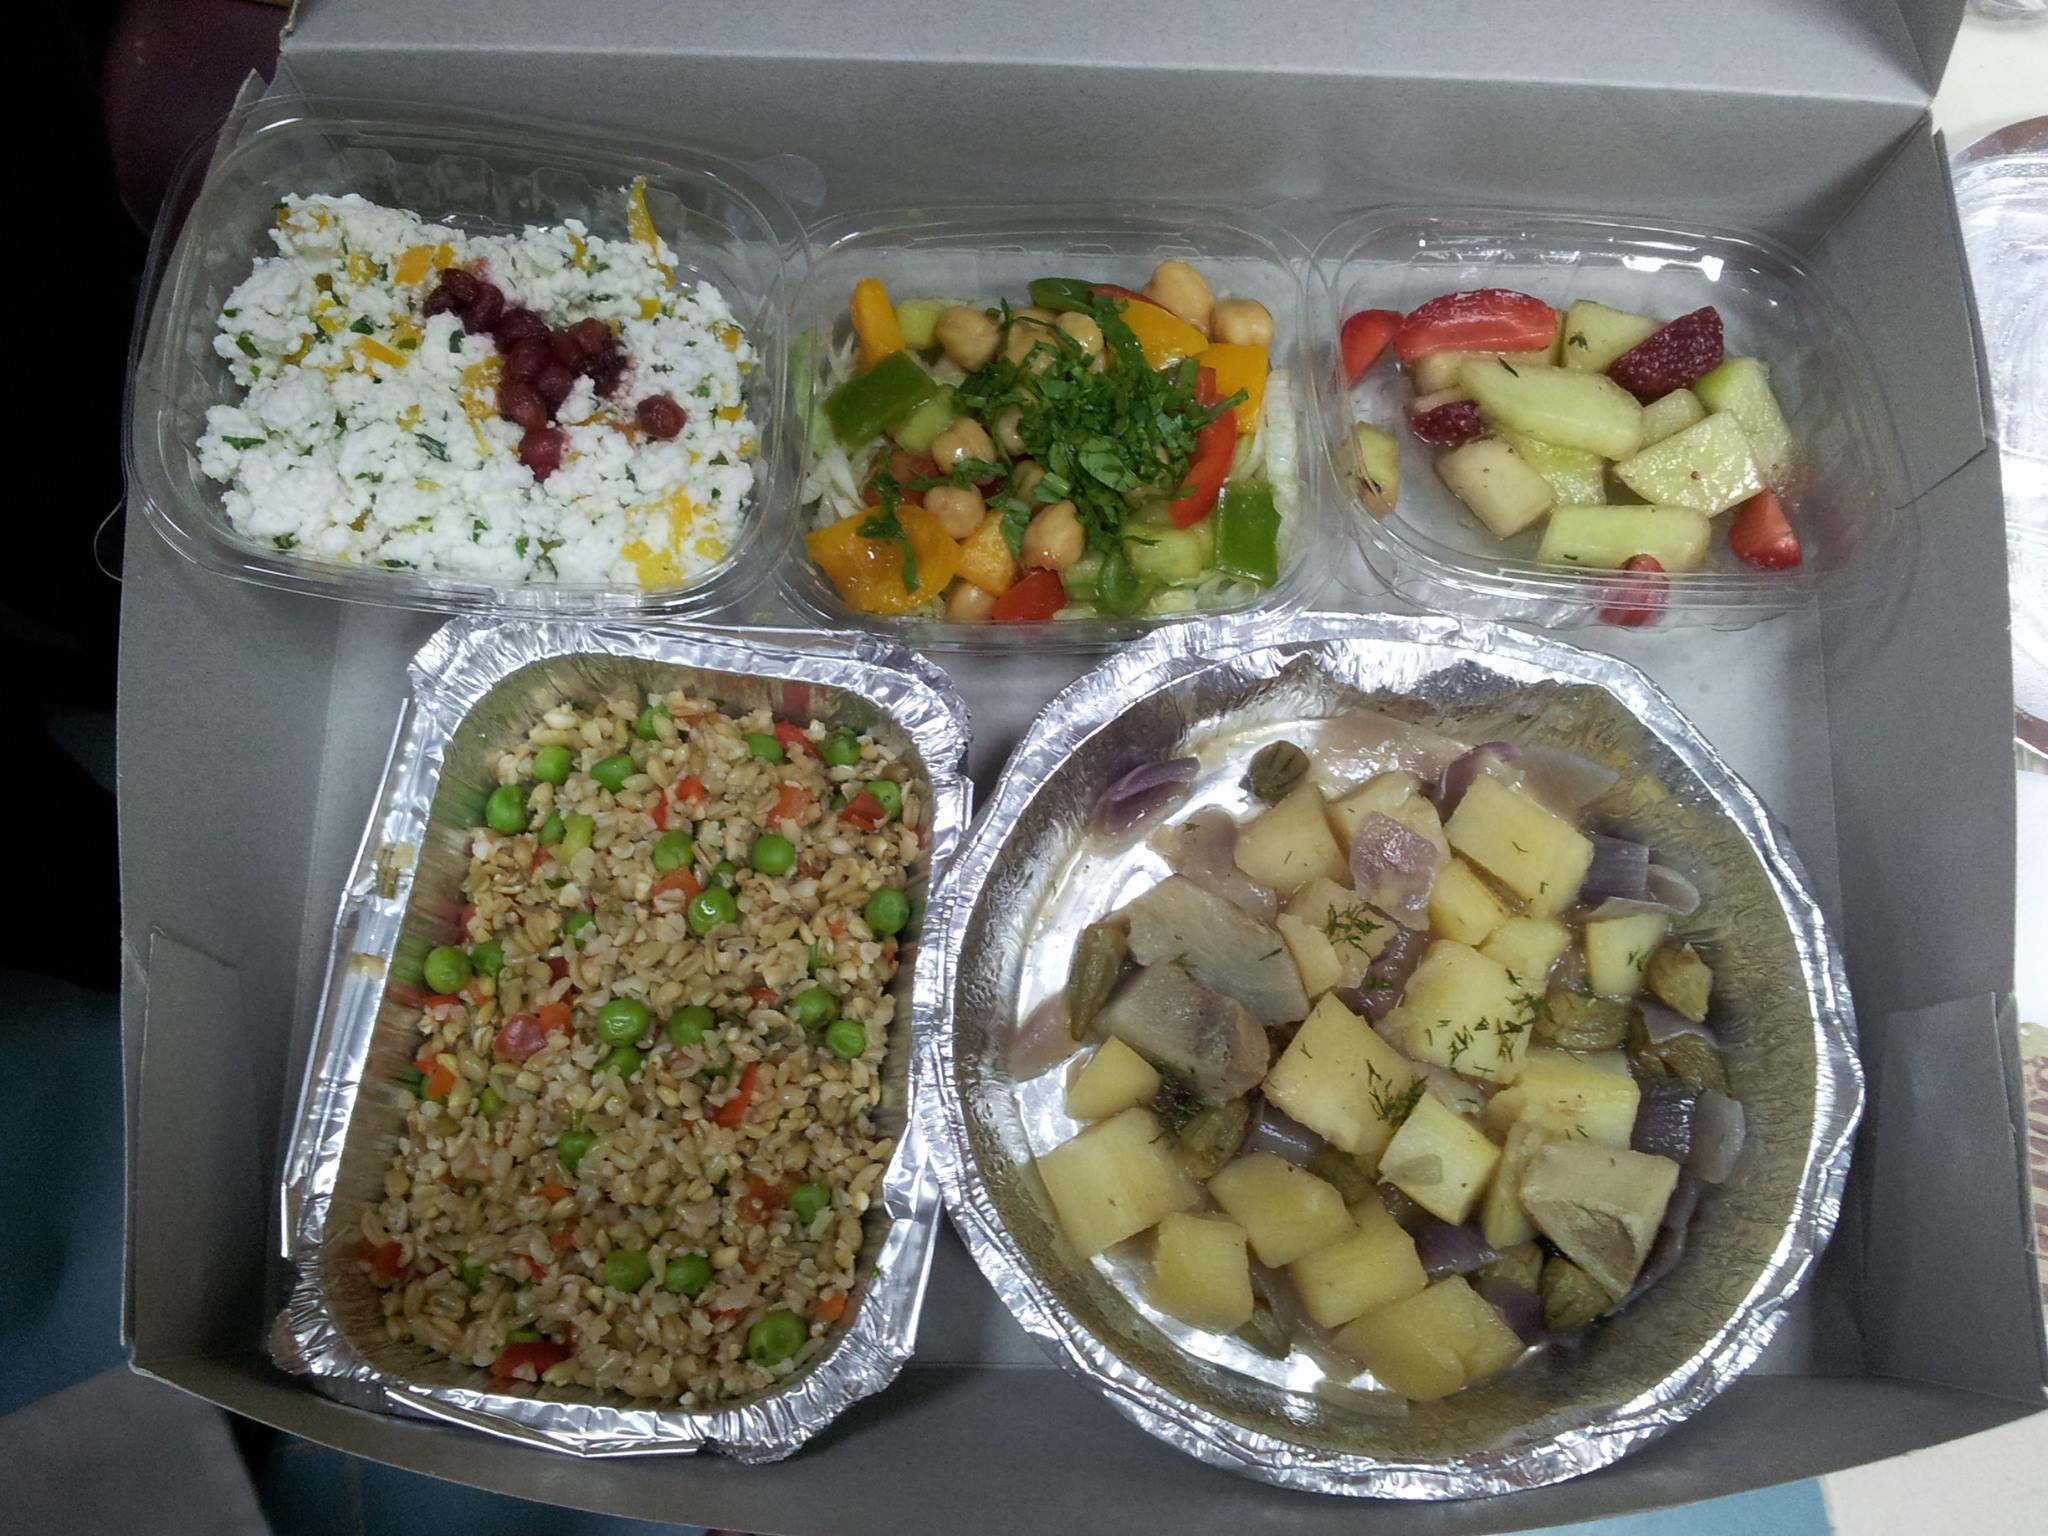 The Mediterranean lunch box. At the workshop the usual sweets and chips were not allowed in the room! A healthy, tasty, colorful MedDiet meal was served instead.jpg